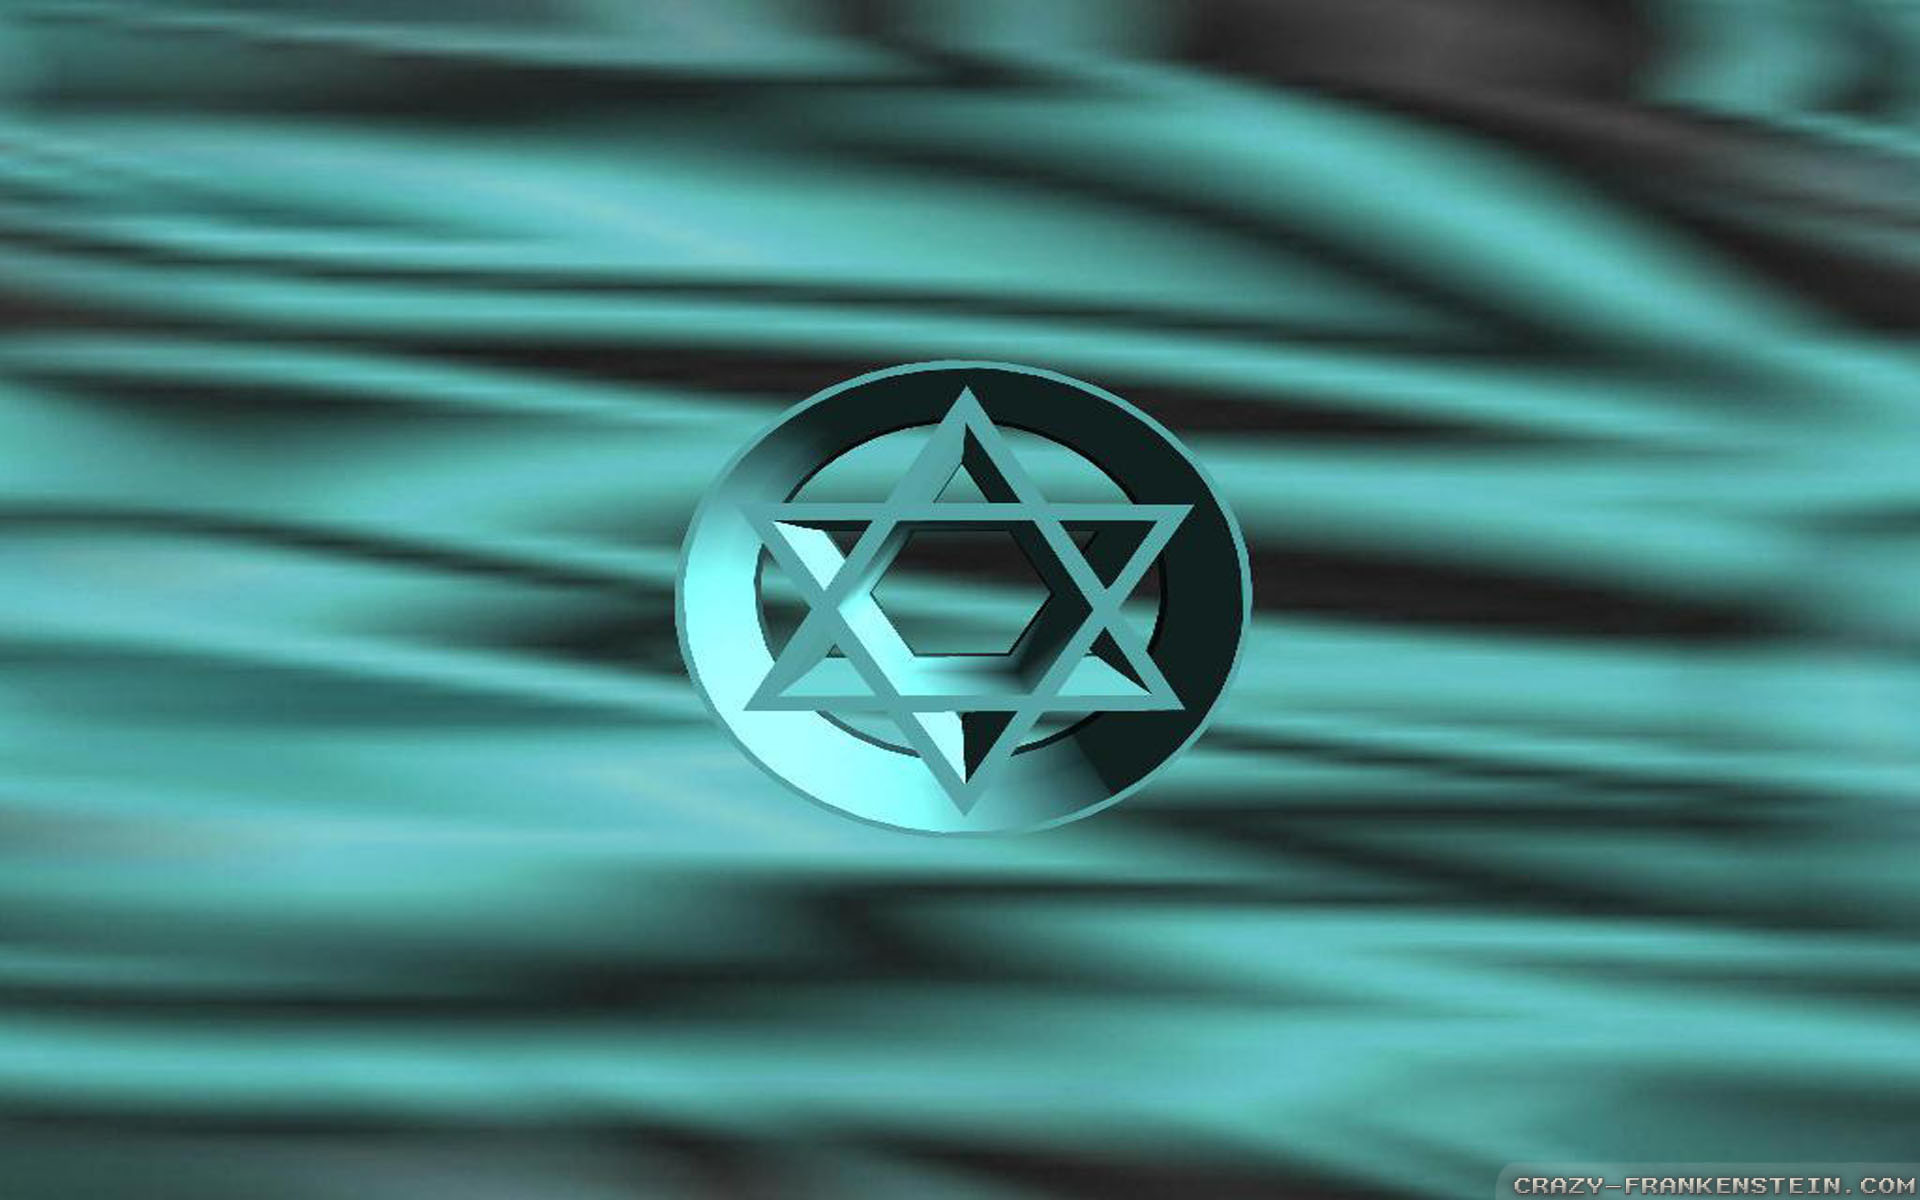 Wallpaper: Religious Jewish wallpapers. Resolution: 1024×768   1280×1024    1600×1200. Widescreen Res: 1440×900   1680×1050   1920×1200